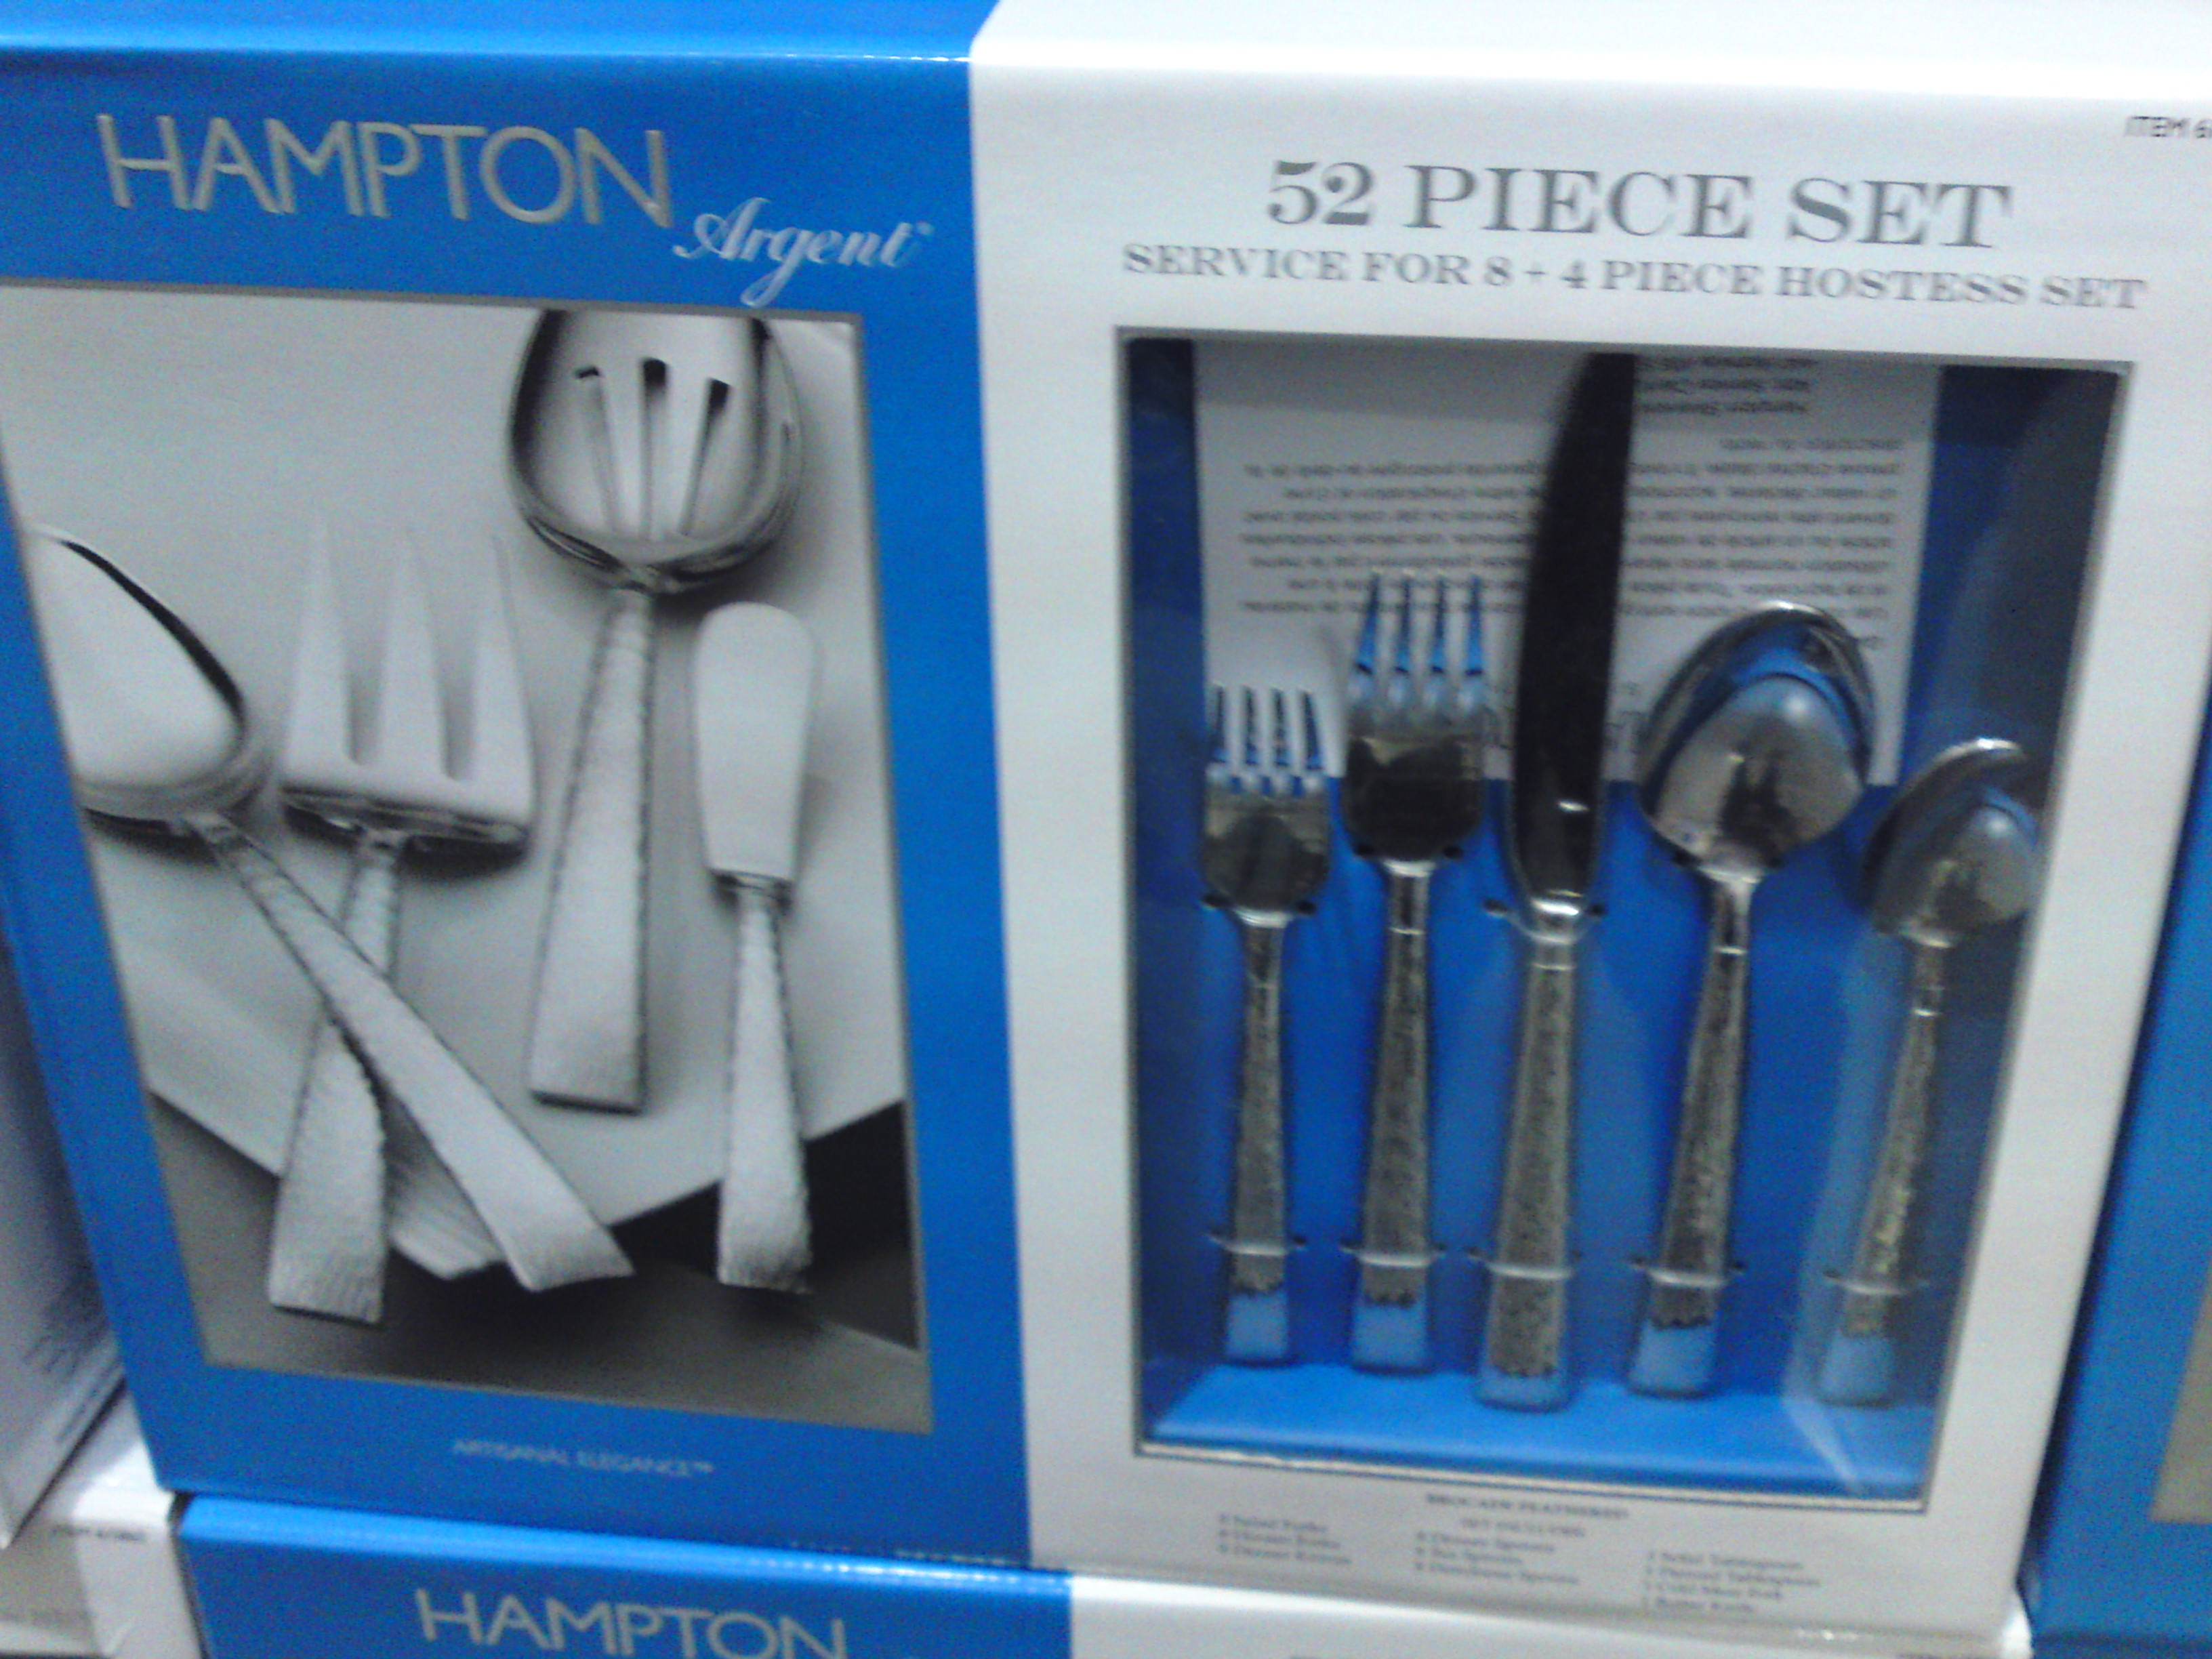 Charming hampton silversmiths for kitchen and dining sets with hampton silversmiths stainless